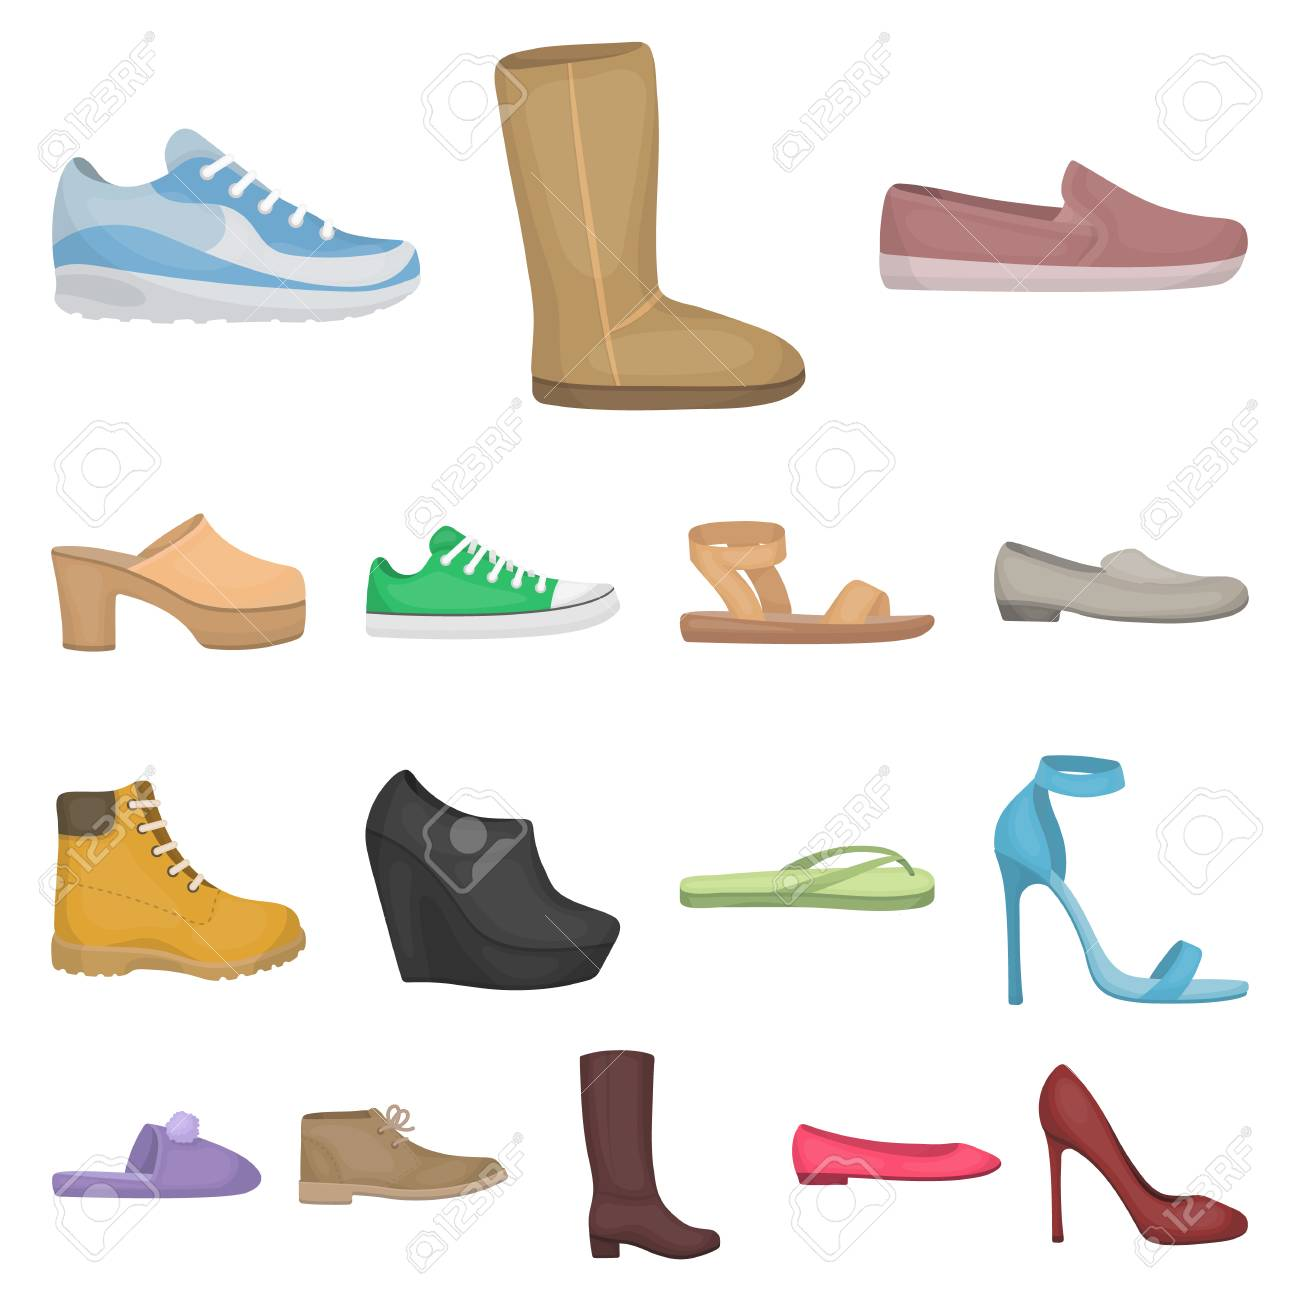 0c07cc5d7918 A variety of shoes cartoon icons in set collection for design. Boot,  sneakers vector